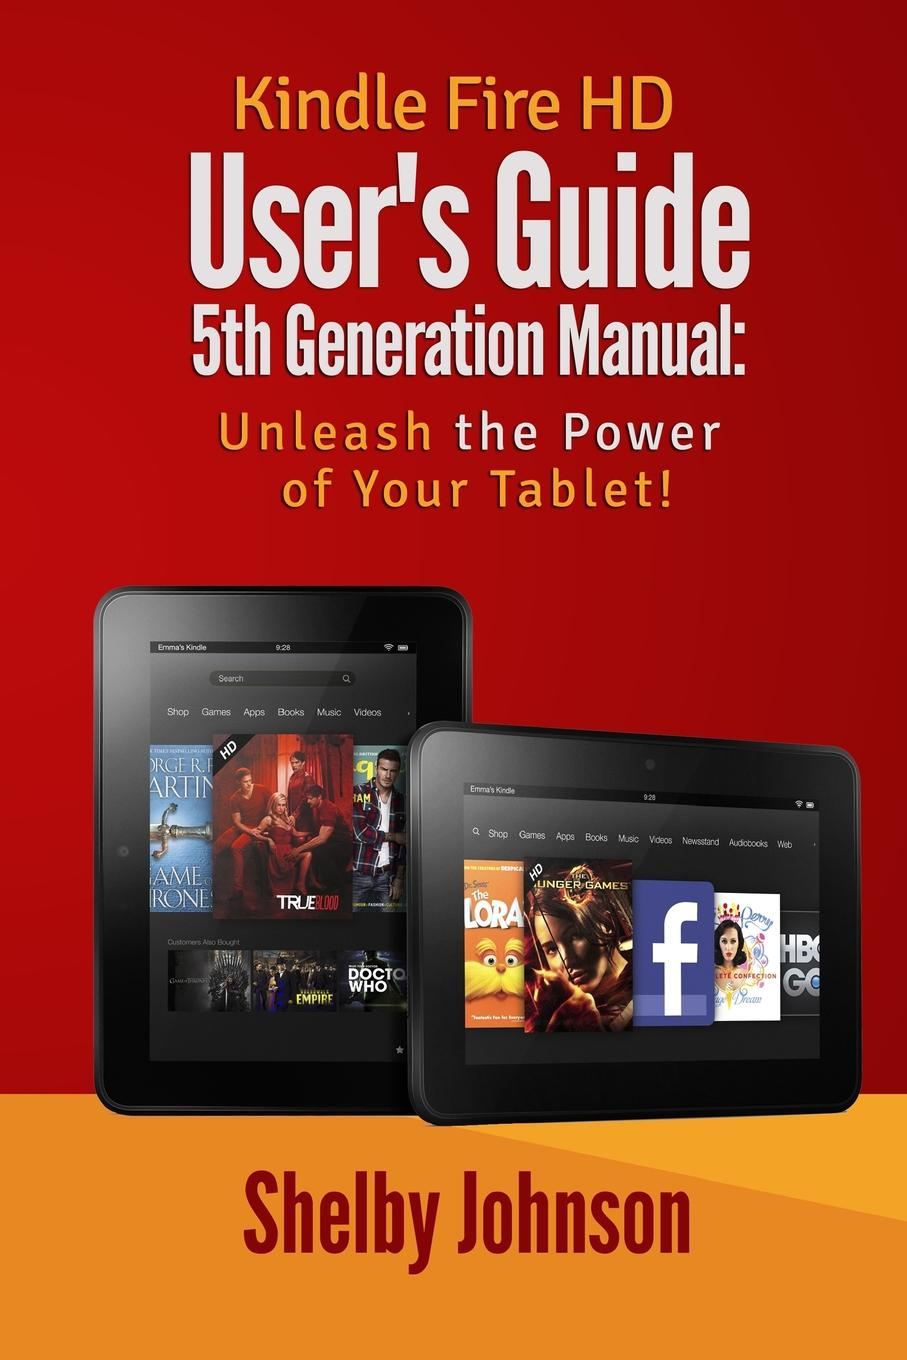 kindle fire hd user s guide 5th generation manual unleash the rh walmart com Kindle User Guide Latest Edition kindle user's guide 5th edition pdf